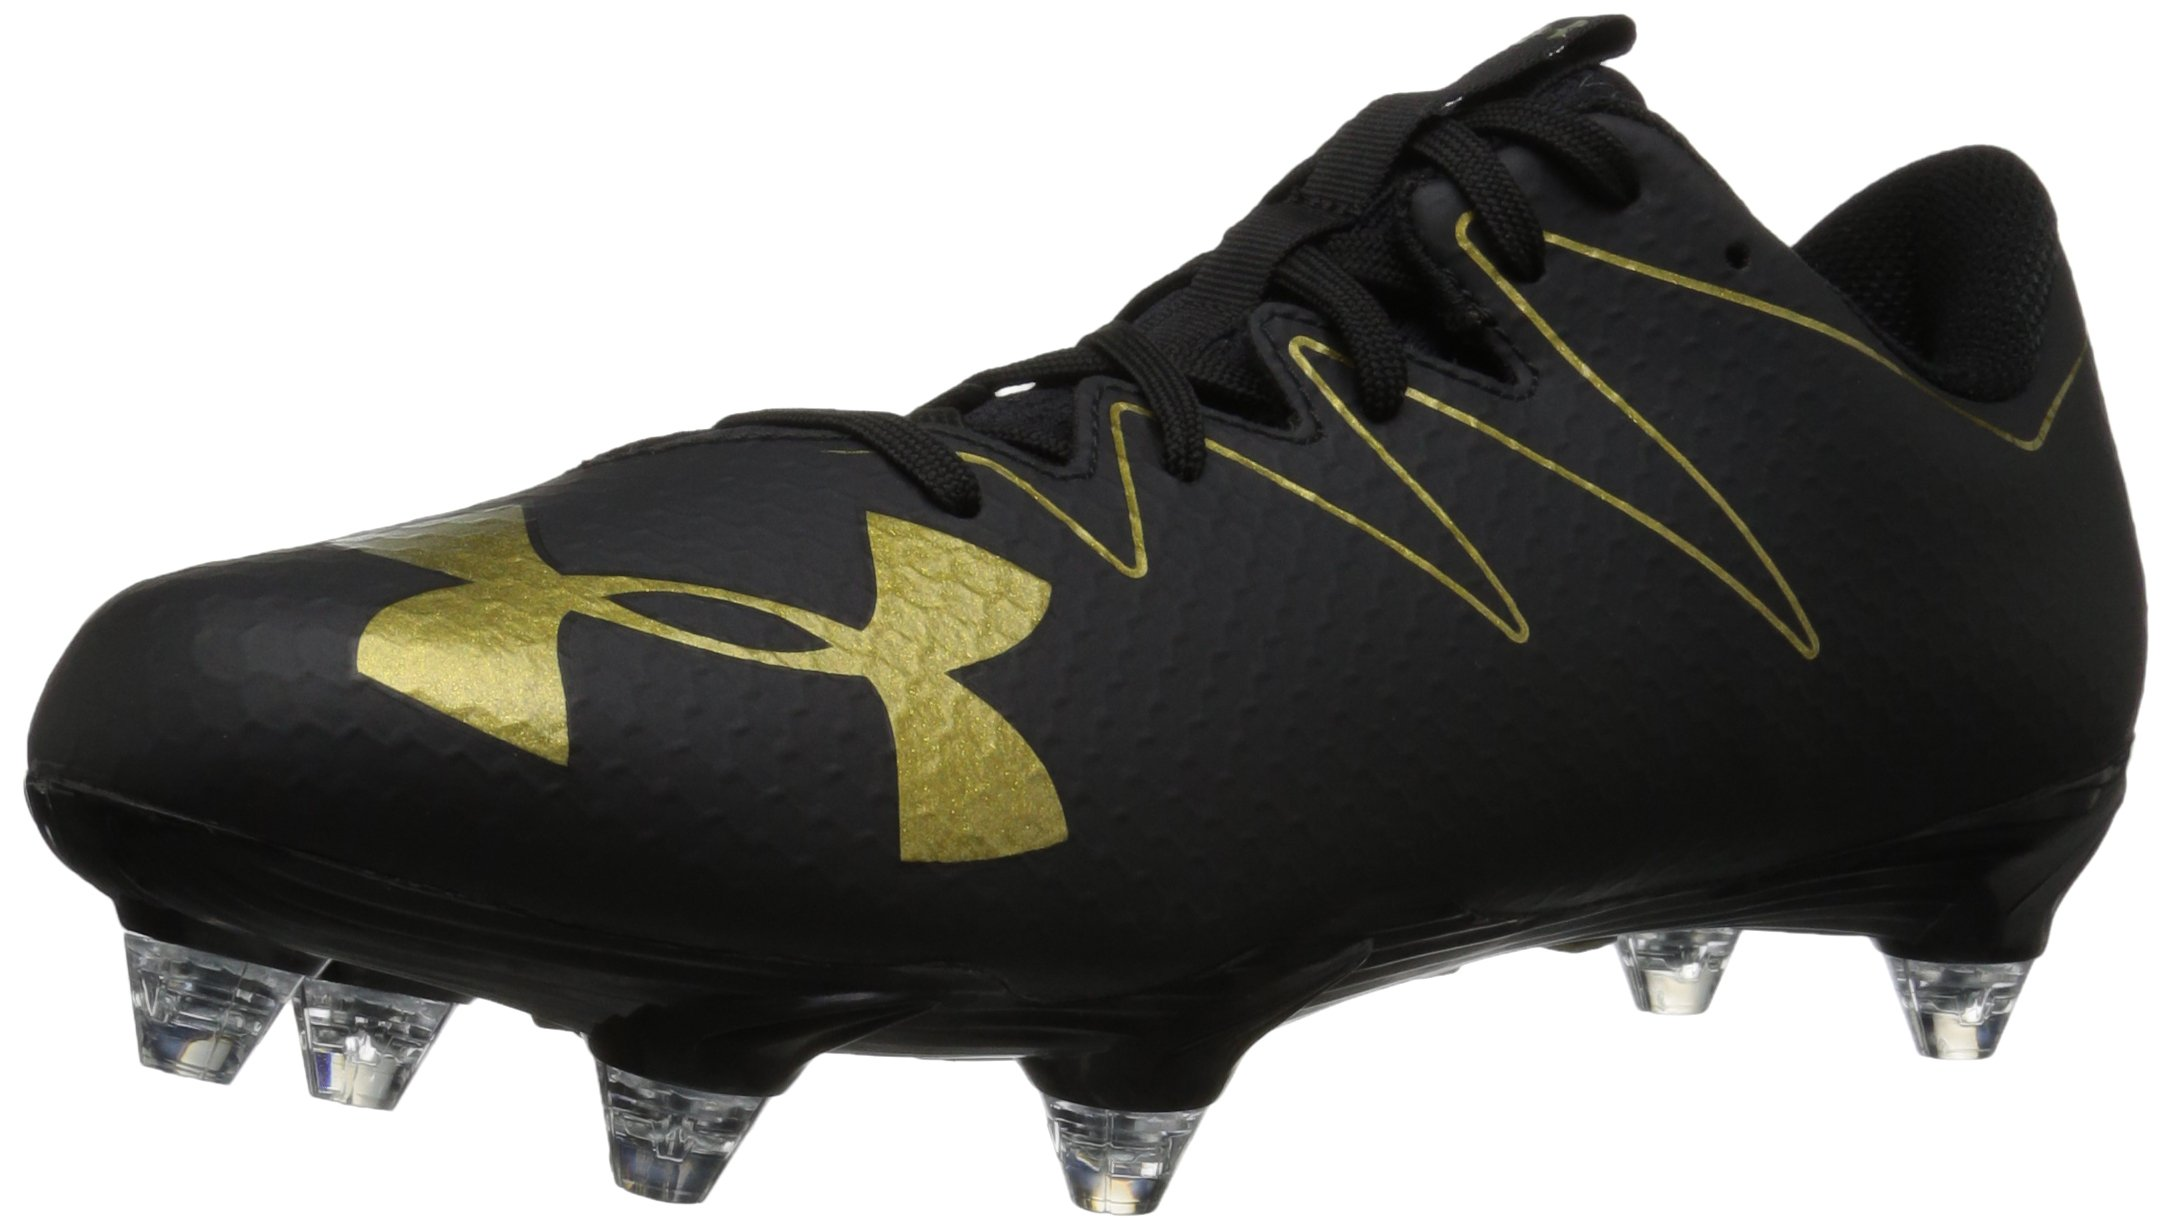 Under Armour Men's Nitro Low Detachable Rugby Shoe, Black (067)/Metallic Gold, 8 by Under Armour